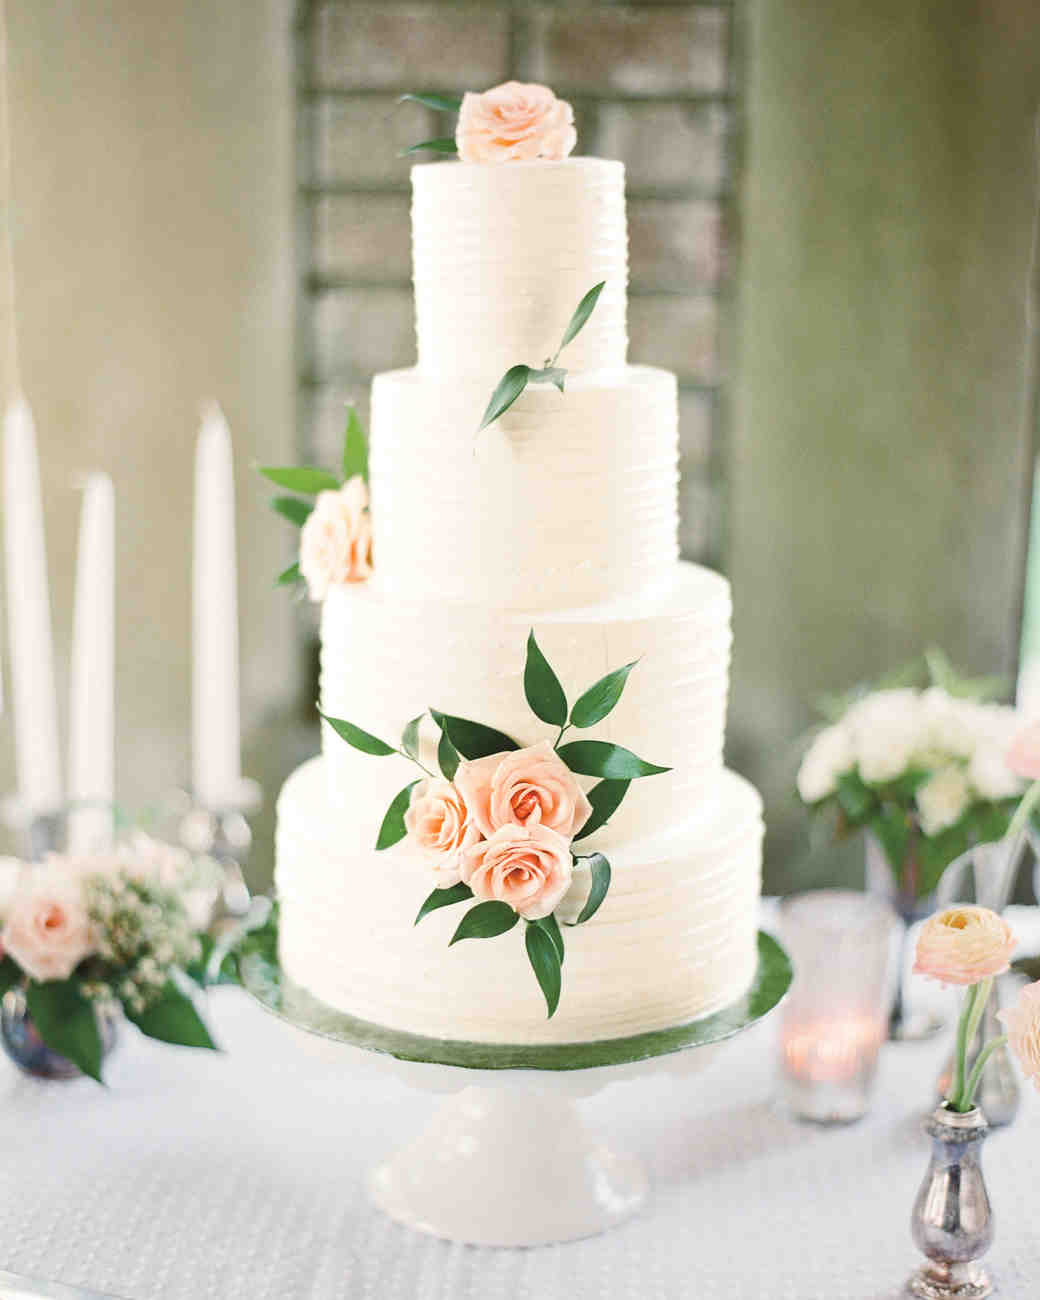 wedding cake roses to make 44 wedding cakes with fresh flowers martha stewart weddings 23715